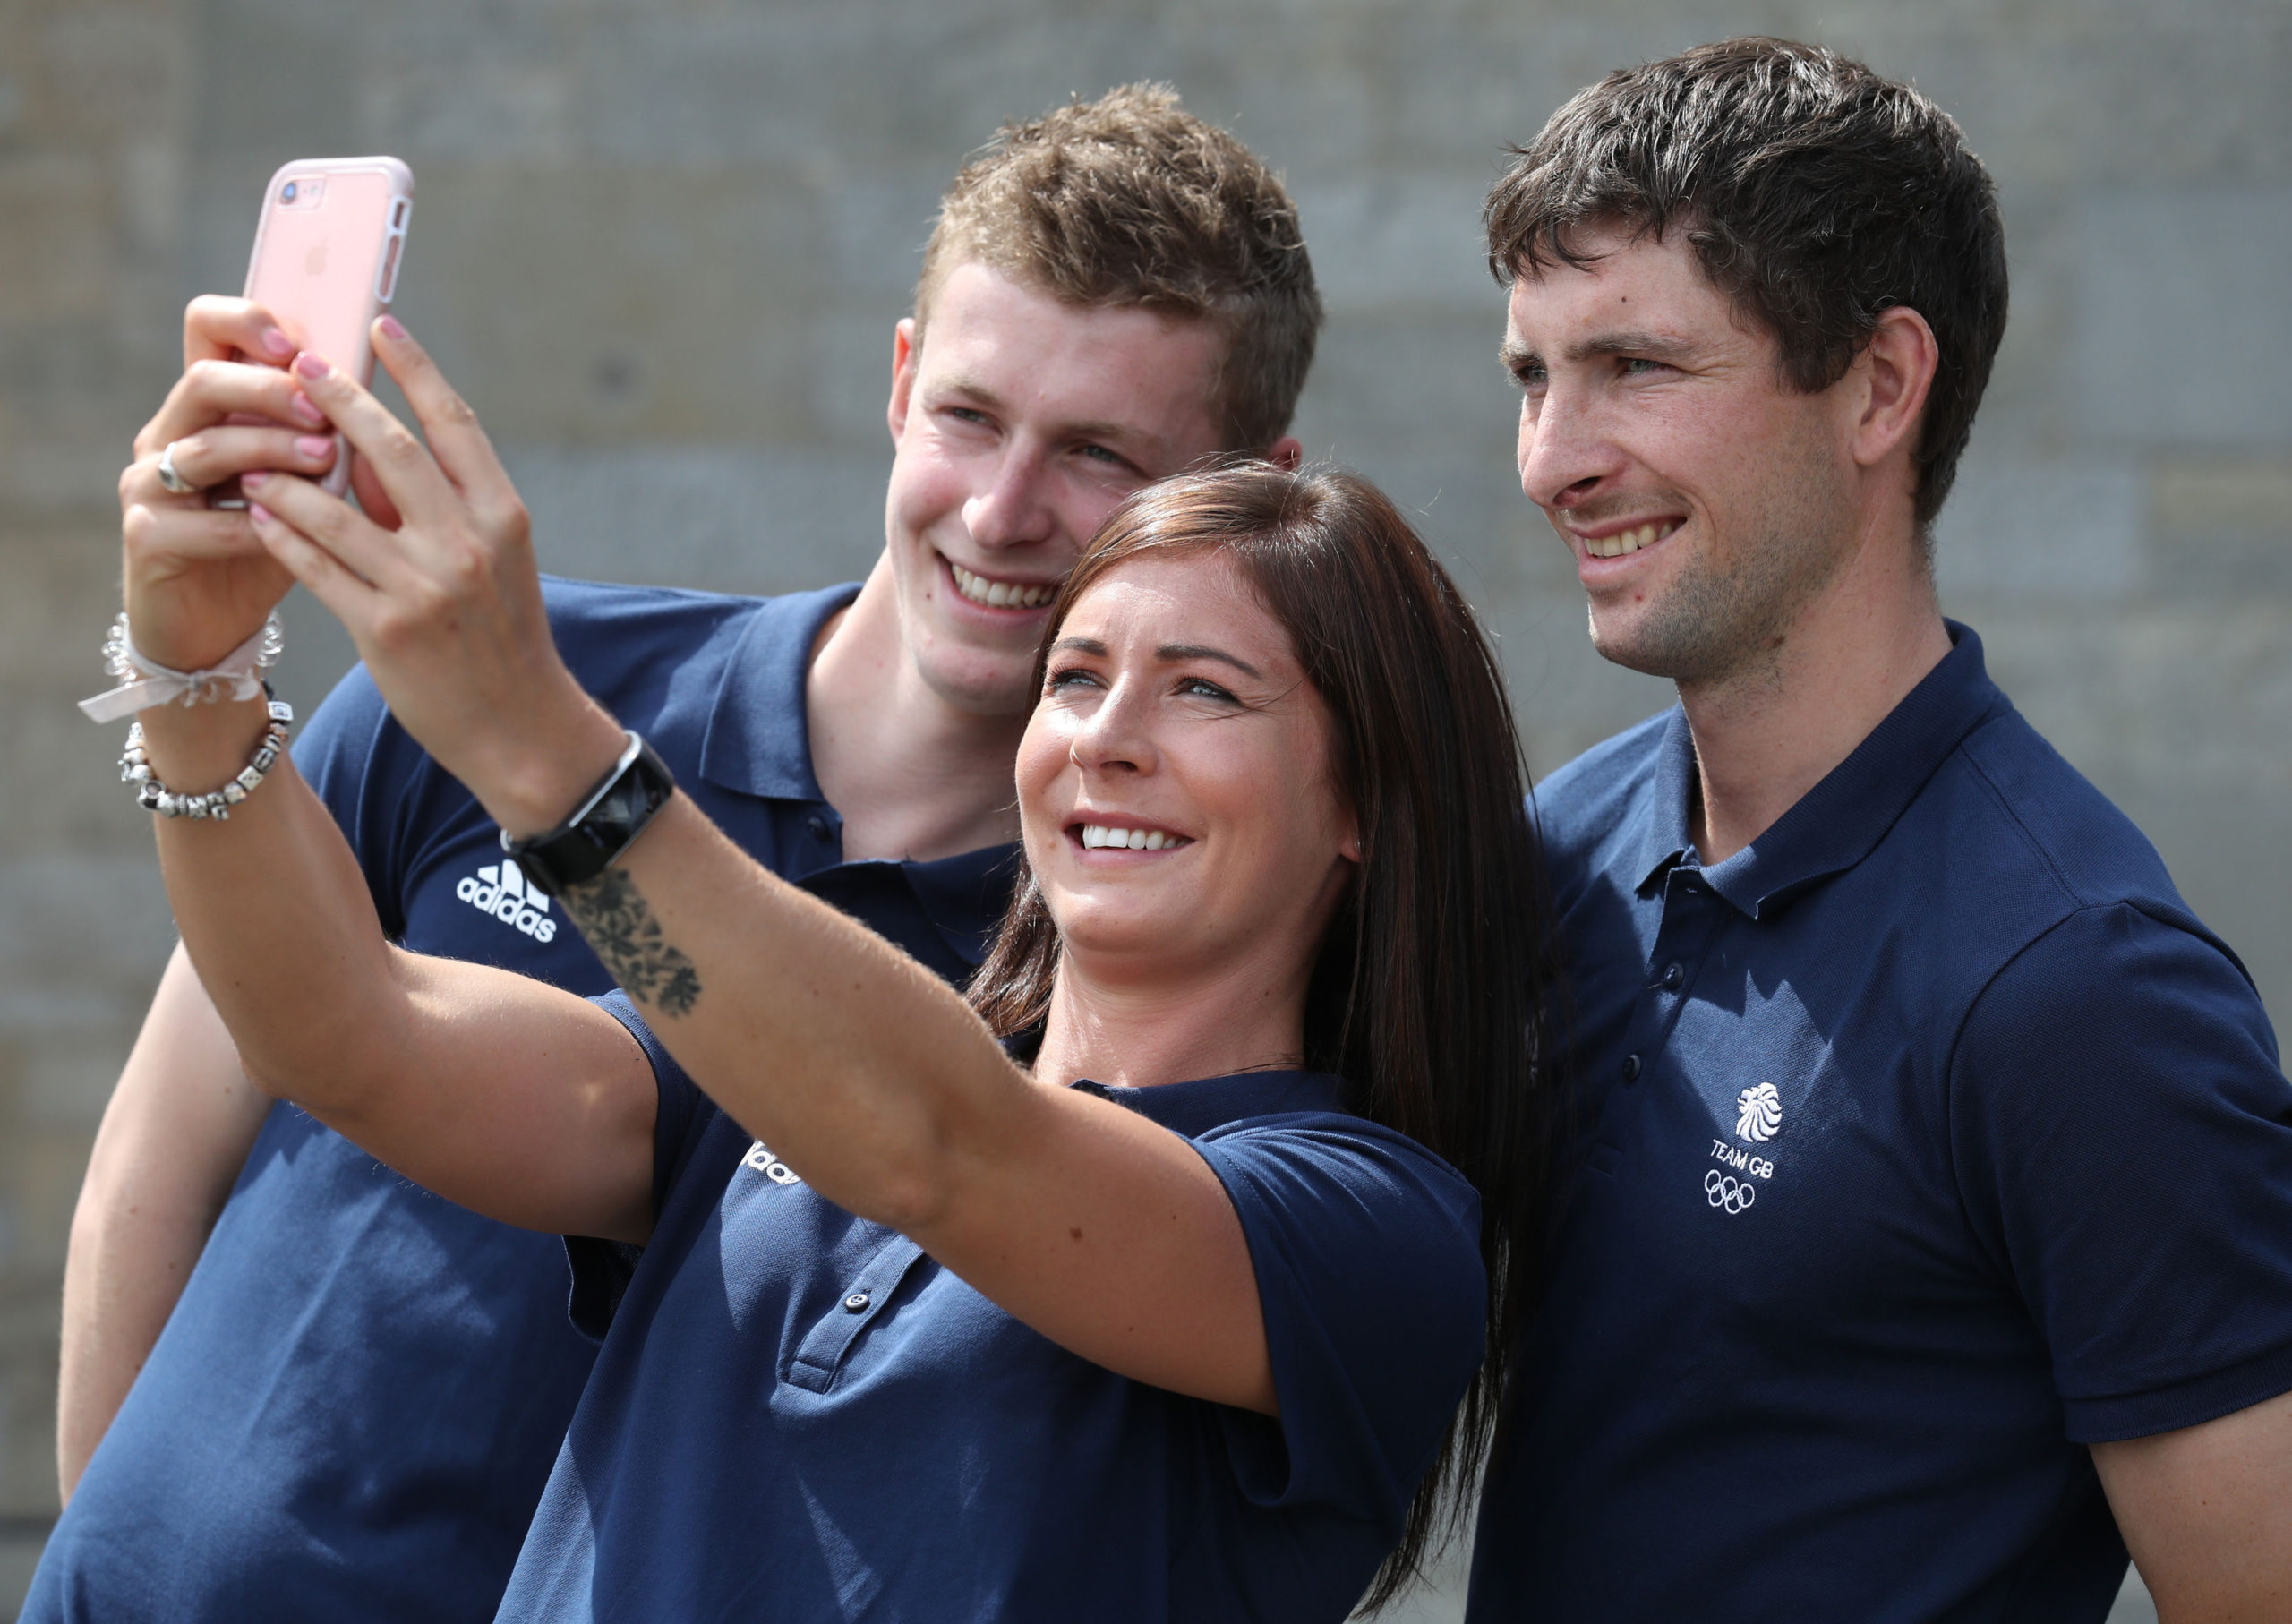 Eve with her brothers Thomas (left) and Glen when they were selected for the 2018 Winter Olympics.